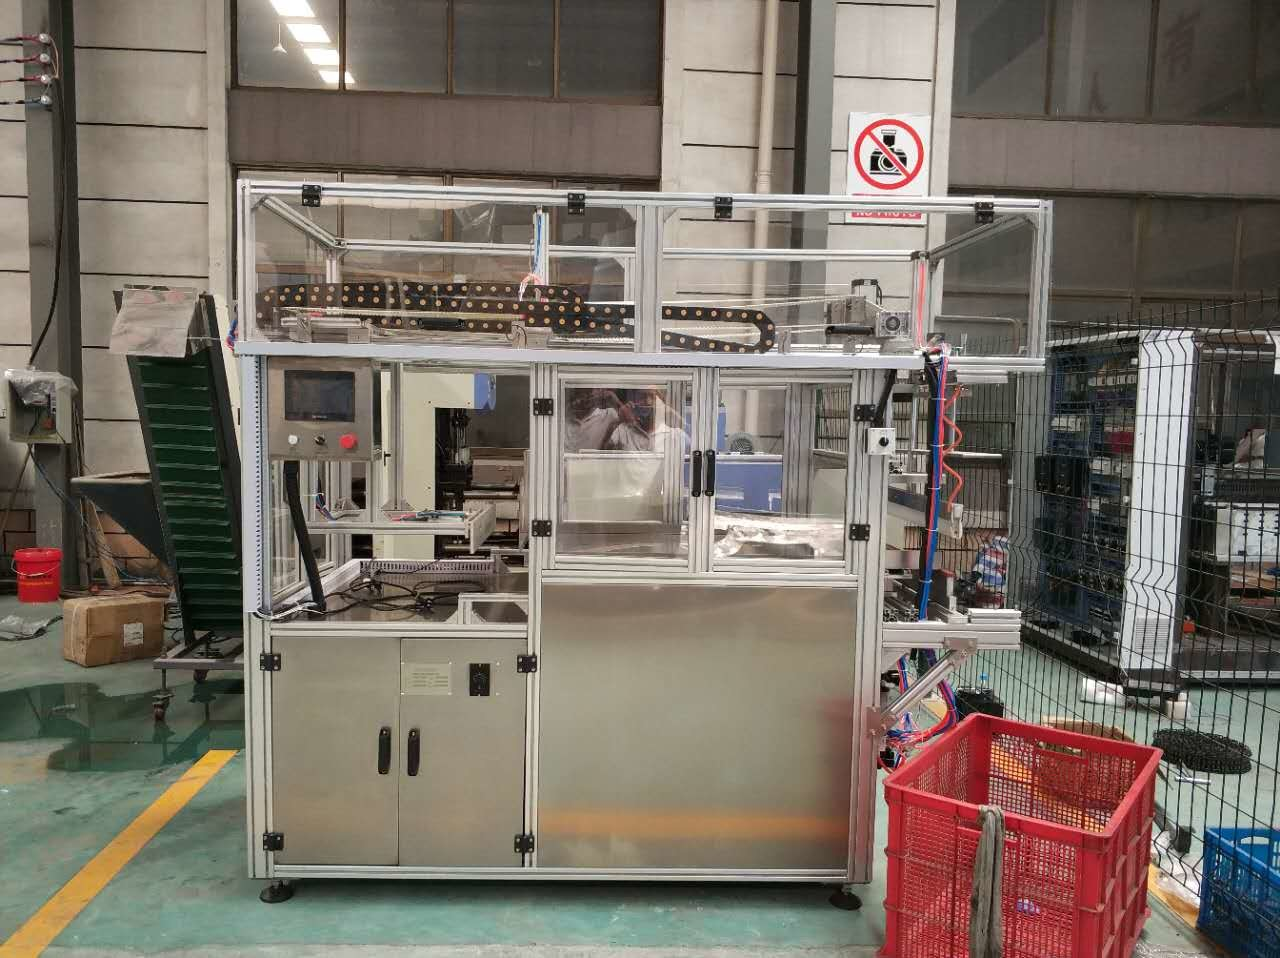 High Speed Automatic Bagging Machine Packaging 8,000 Bottles Per Hour